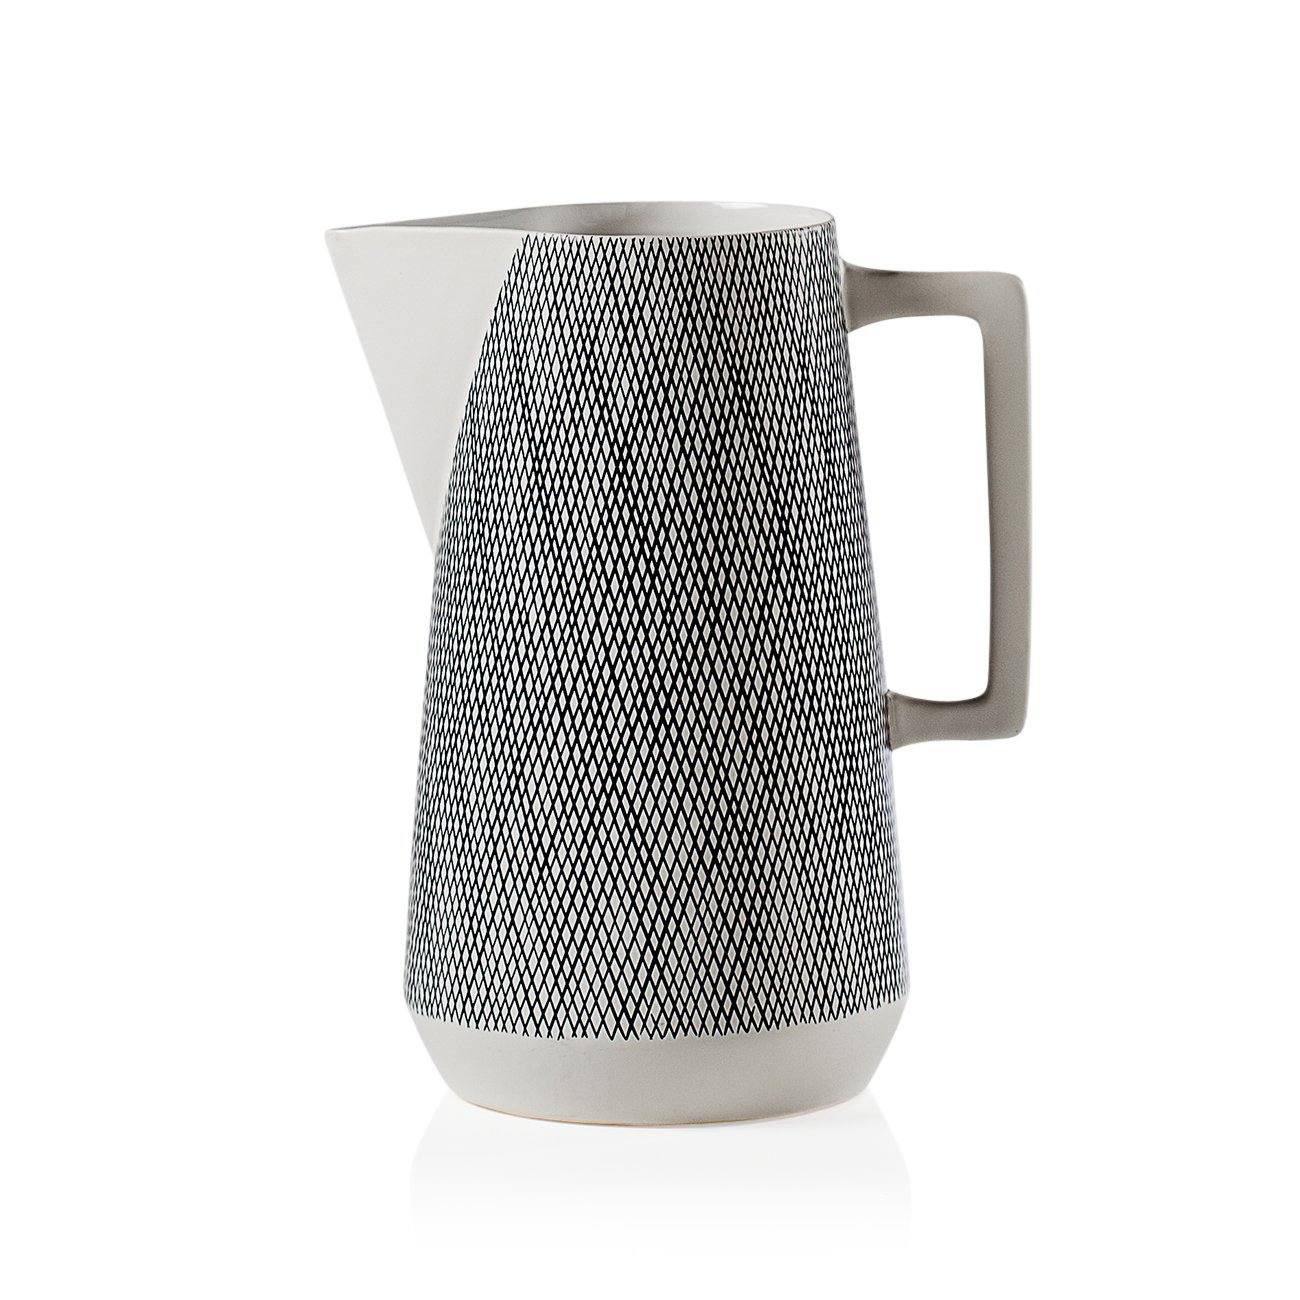 Torre & Tagus Bergen Weave White Ceramic Pitcher by Torre & Tagus